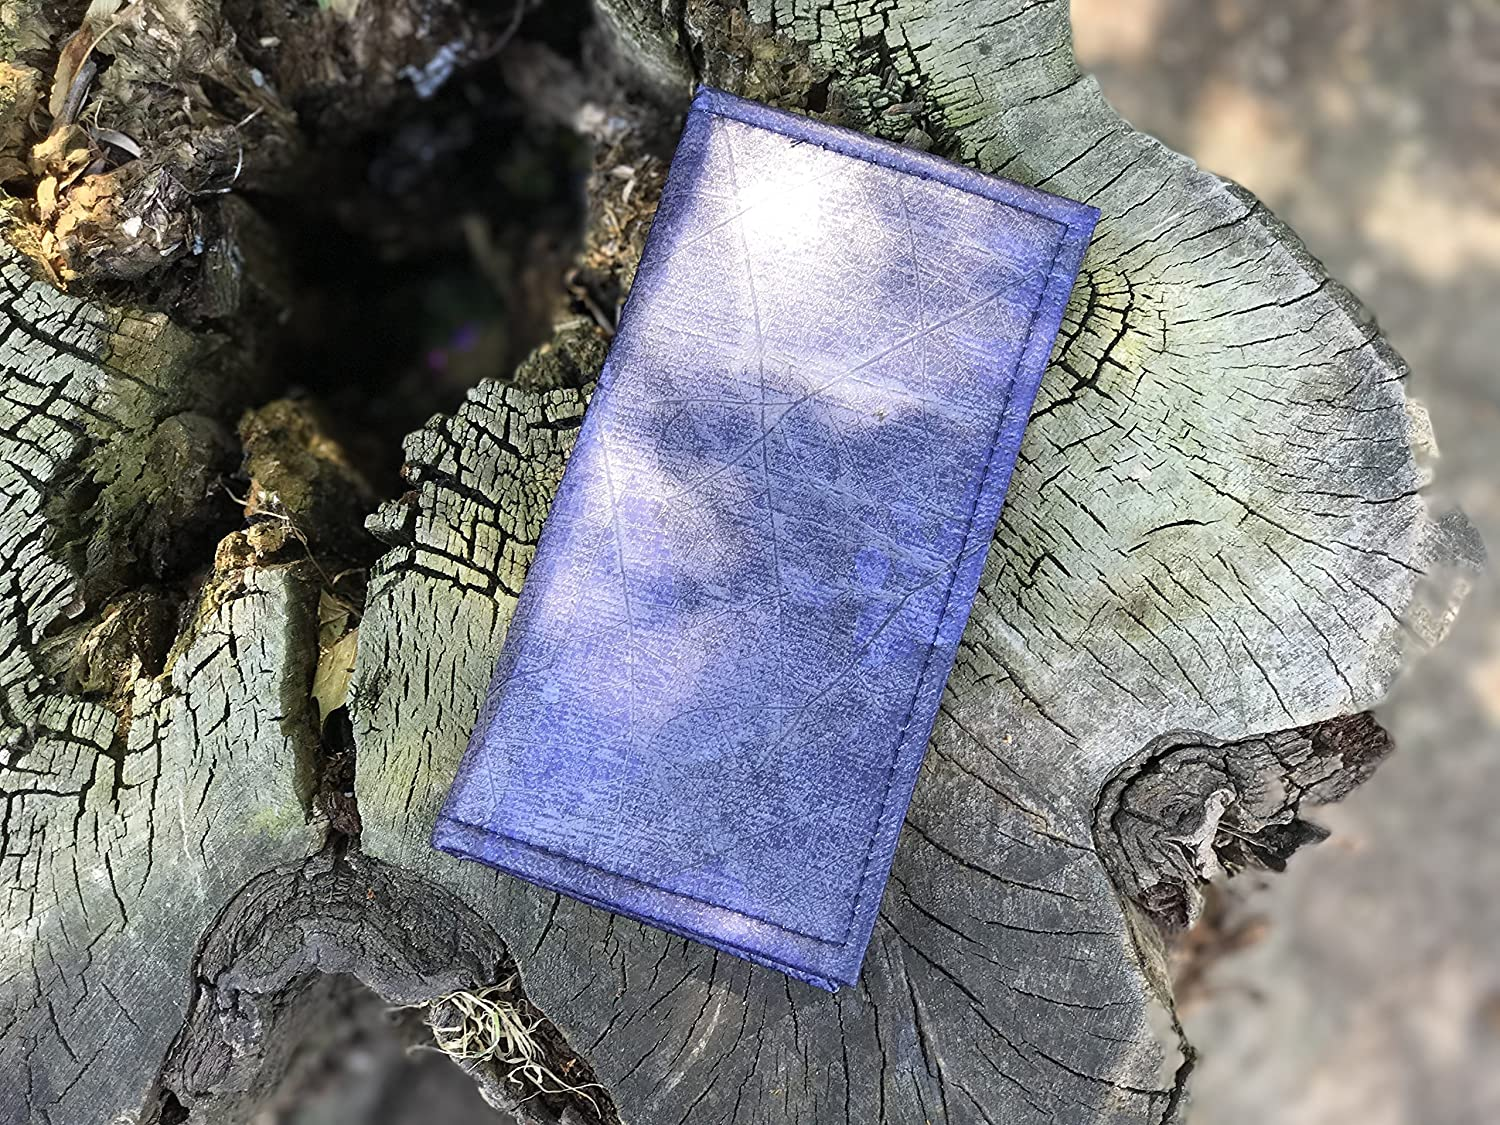 Zessoo Vinci Leaf Wallet | This Vegan Wallet is made from leaves [Cruelty-Free] | San Marino - Blue